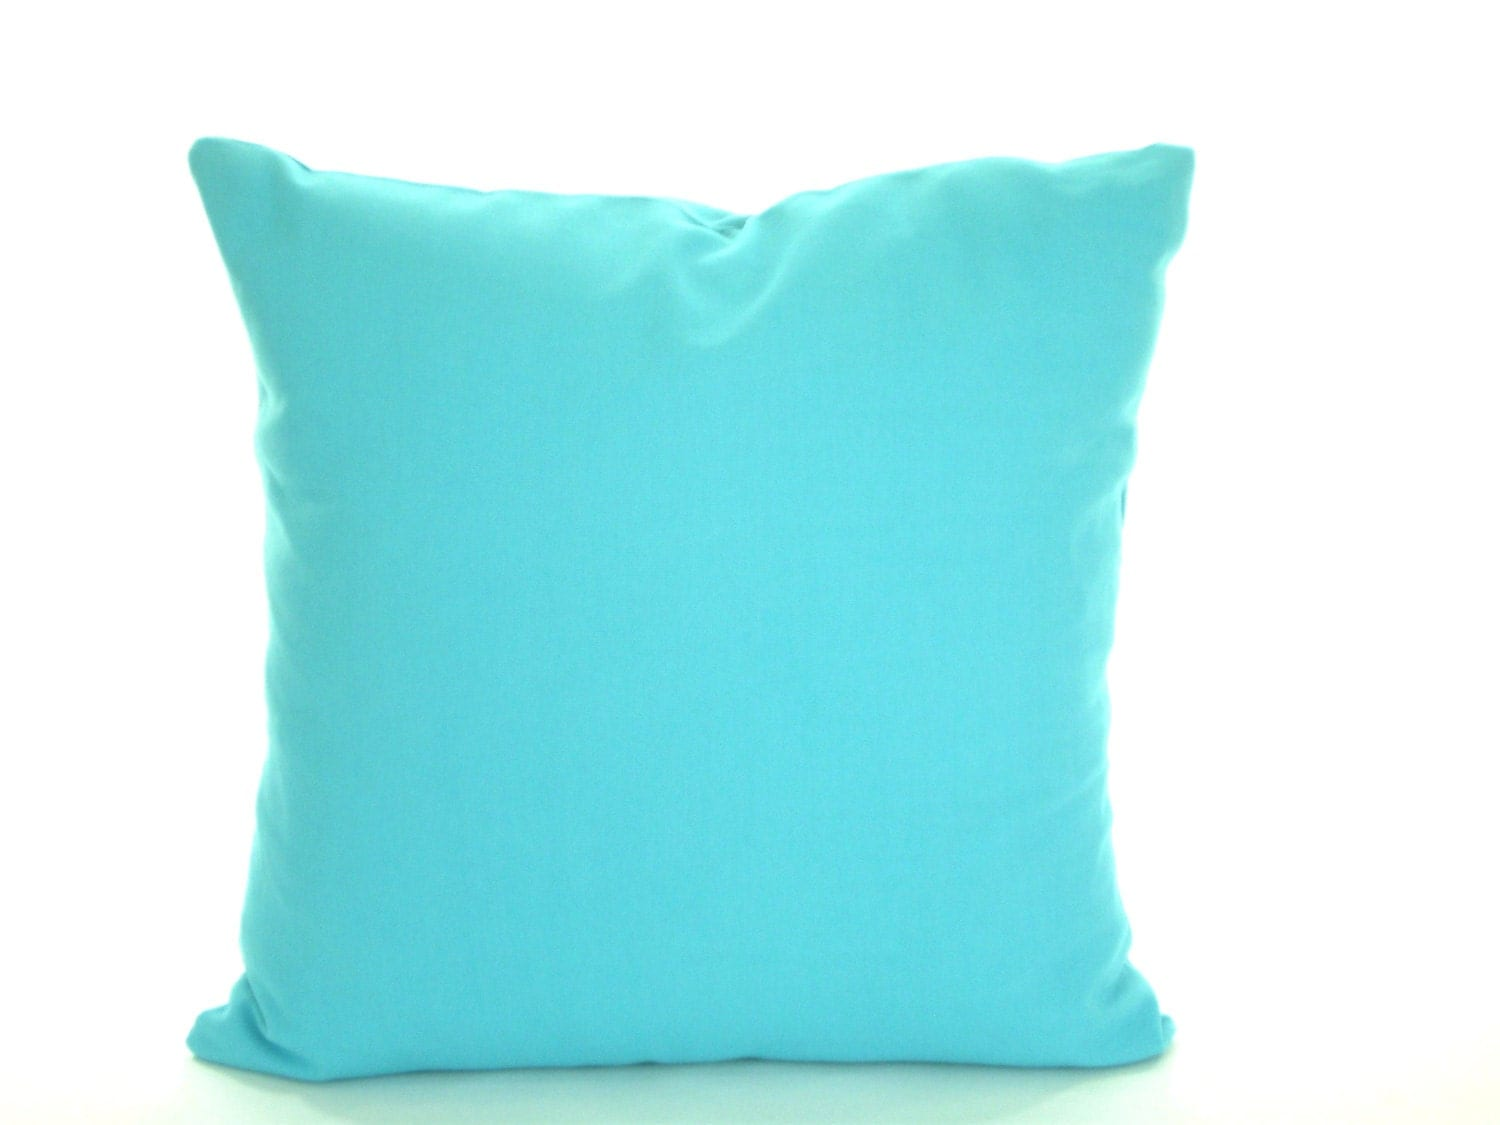 Throw Pillows Aqua Blue : Solid Aqua Blue Pillow Cover Decorative Throw Pillow